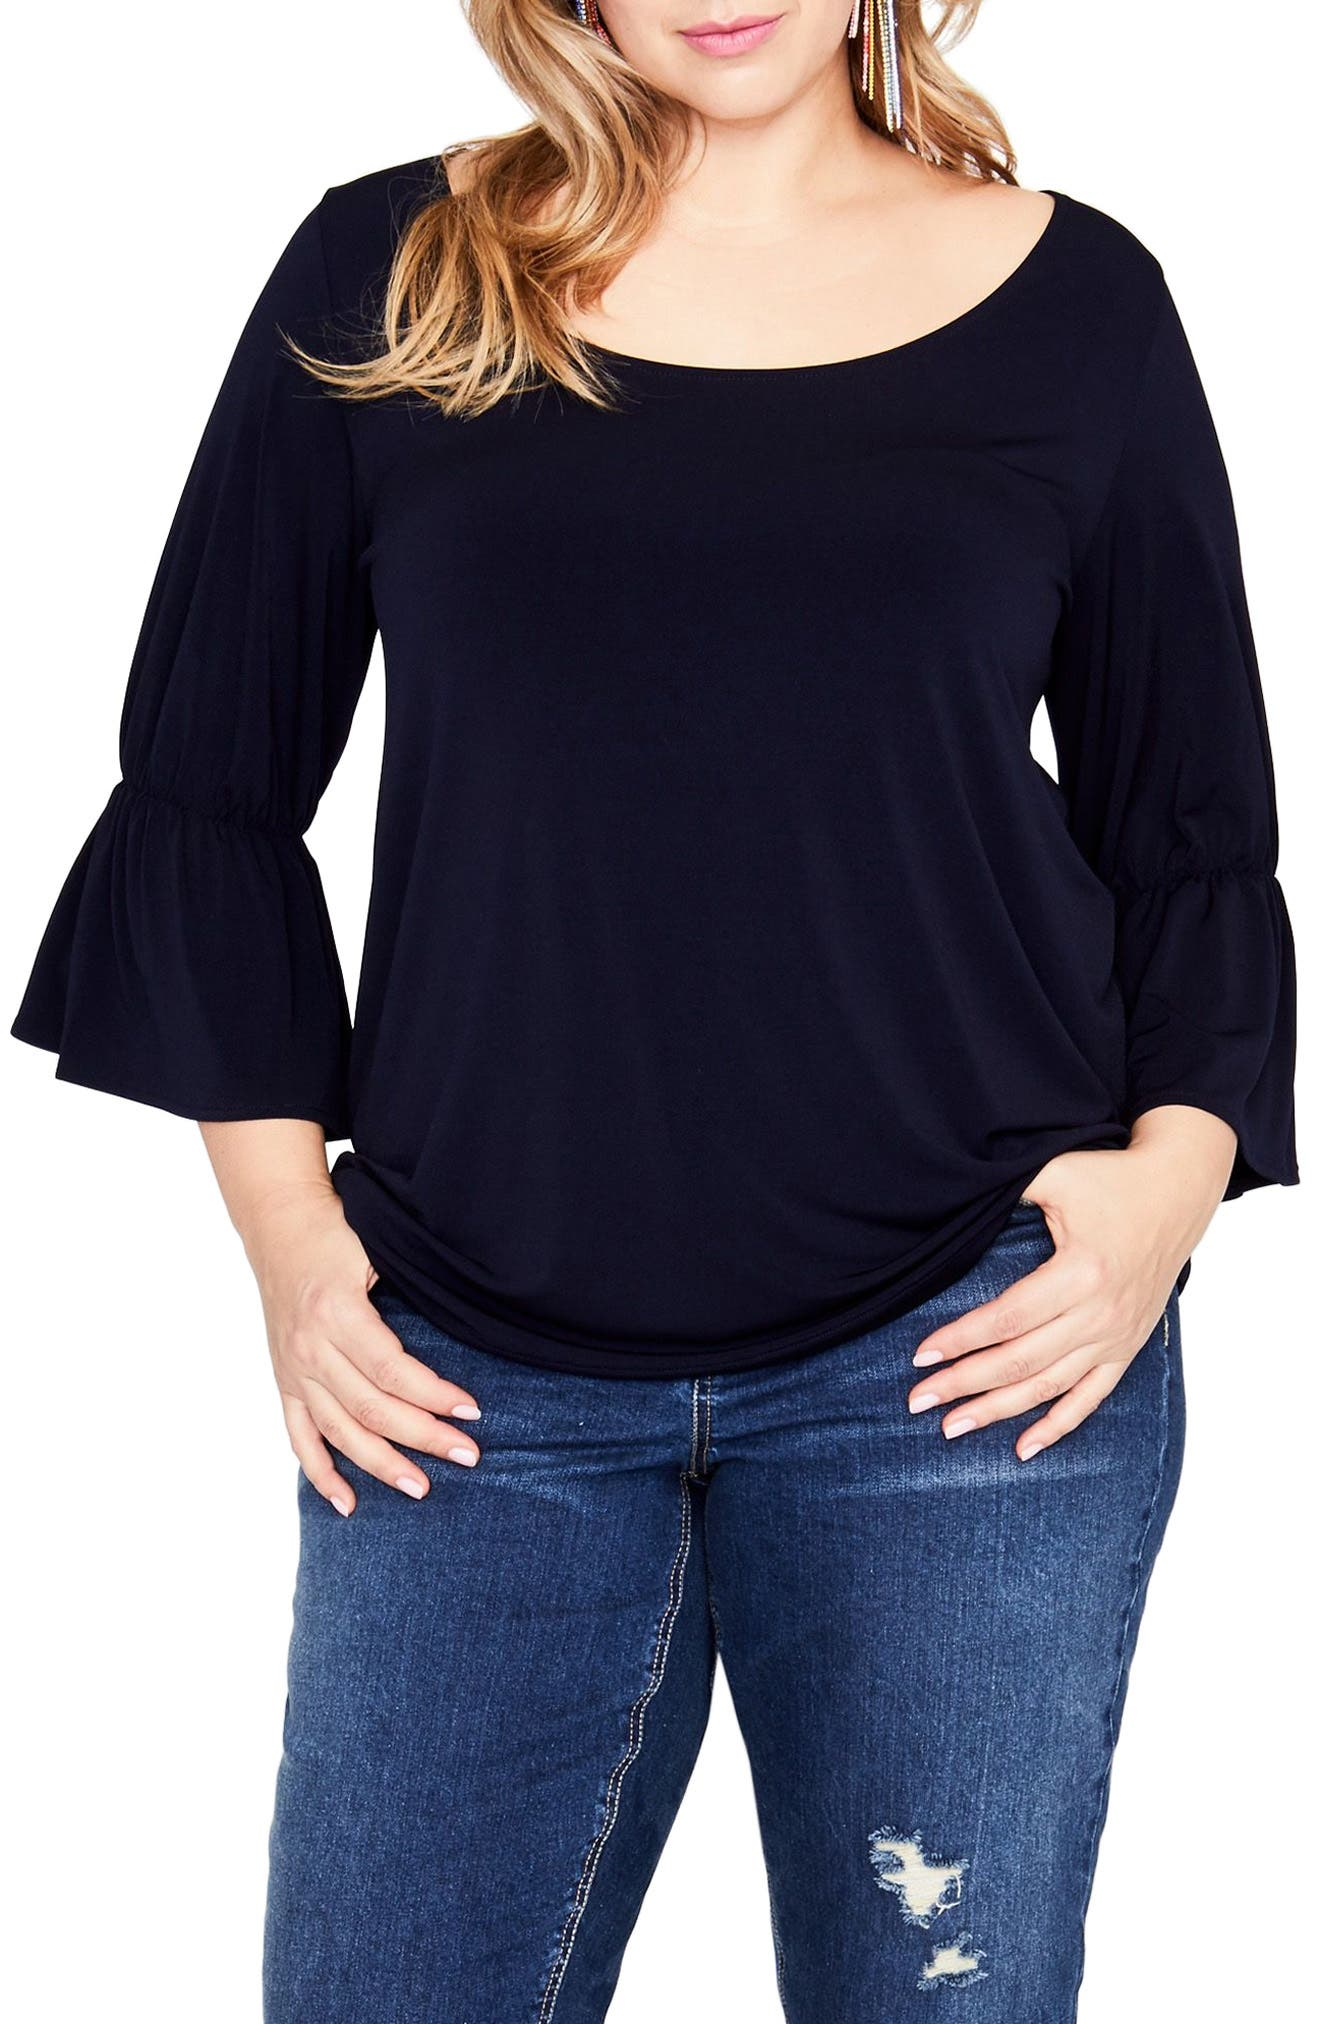 Ruffle Sleeve Top,                             Main thumbnail 1, color,                             411